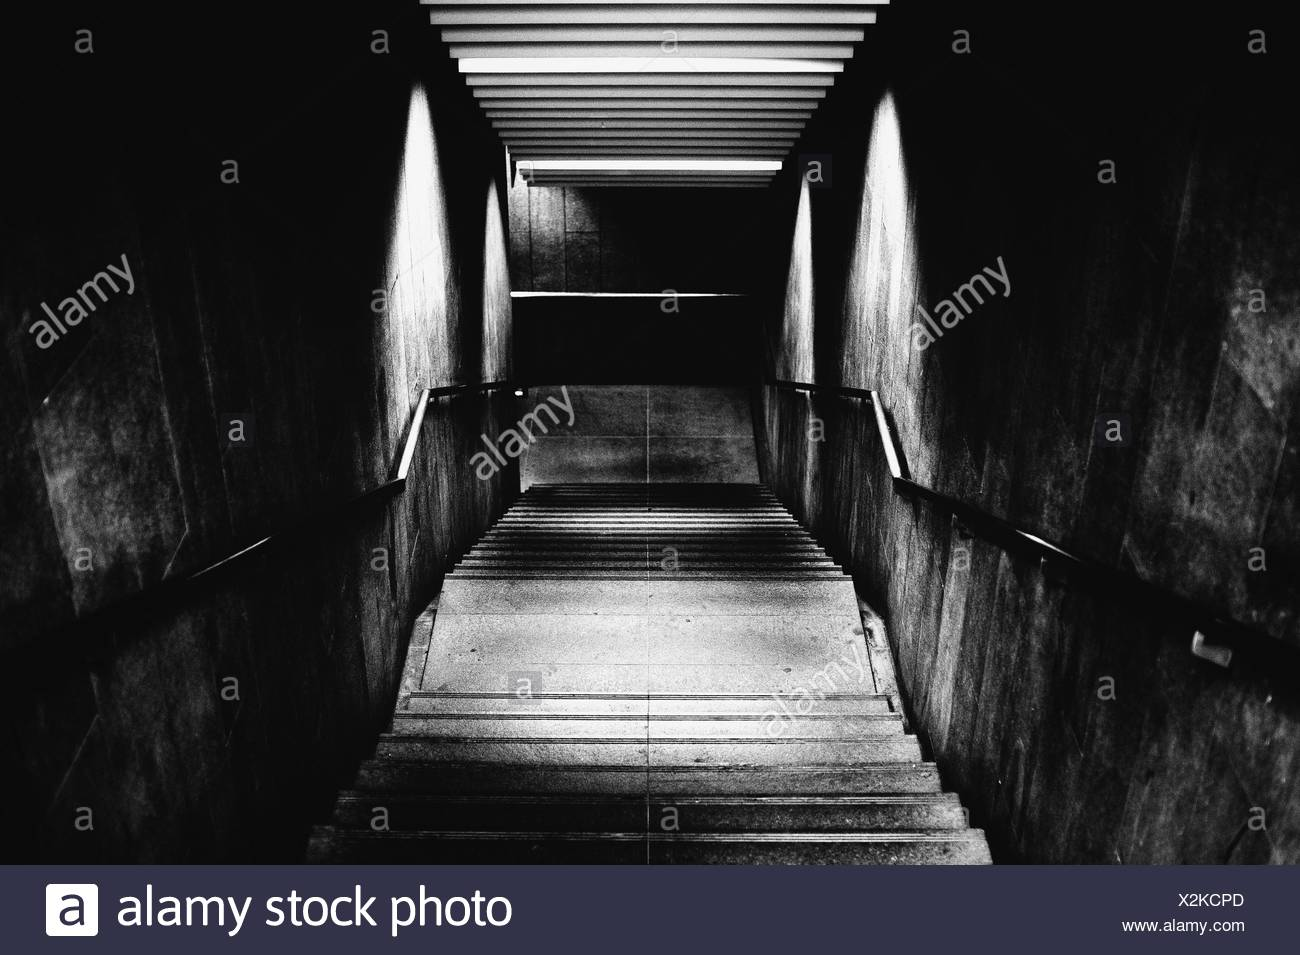 High Angle View Of Steps In Subway Station - Stock Image